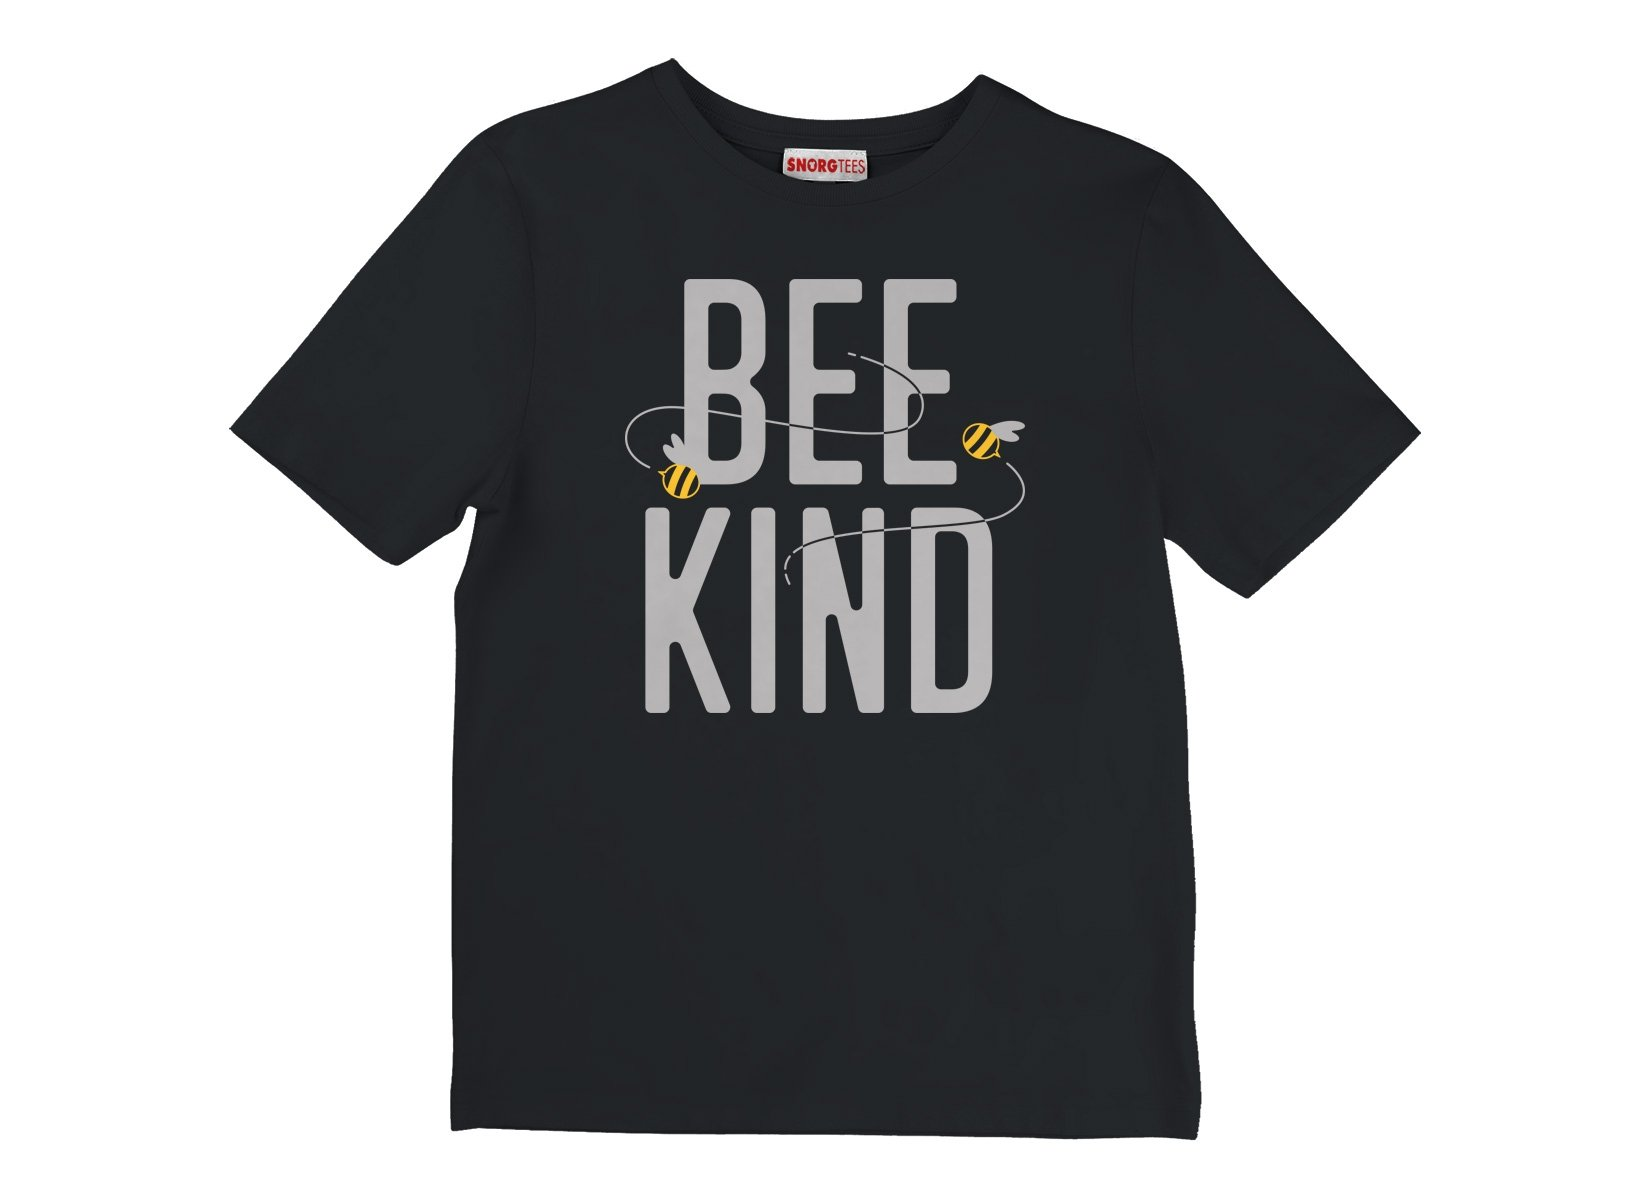 Bee Kind on Kids T-Shirt